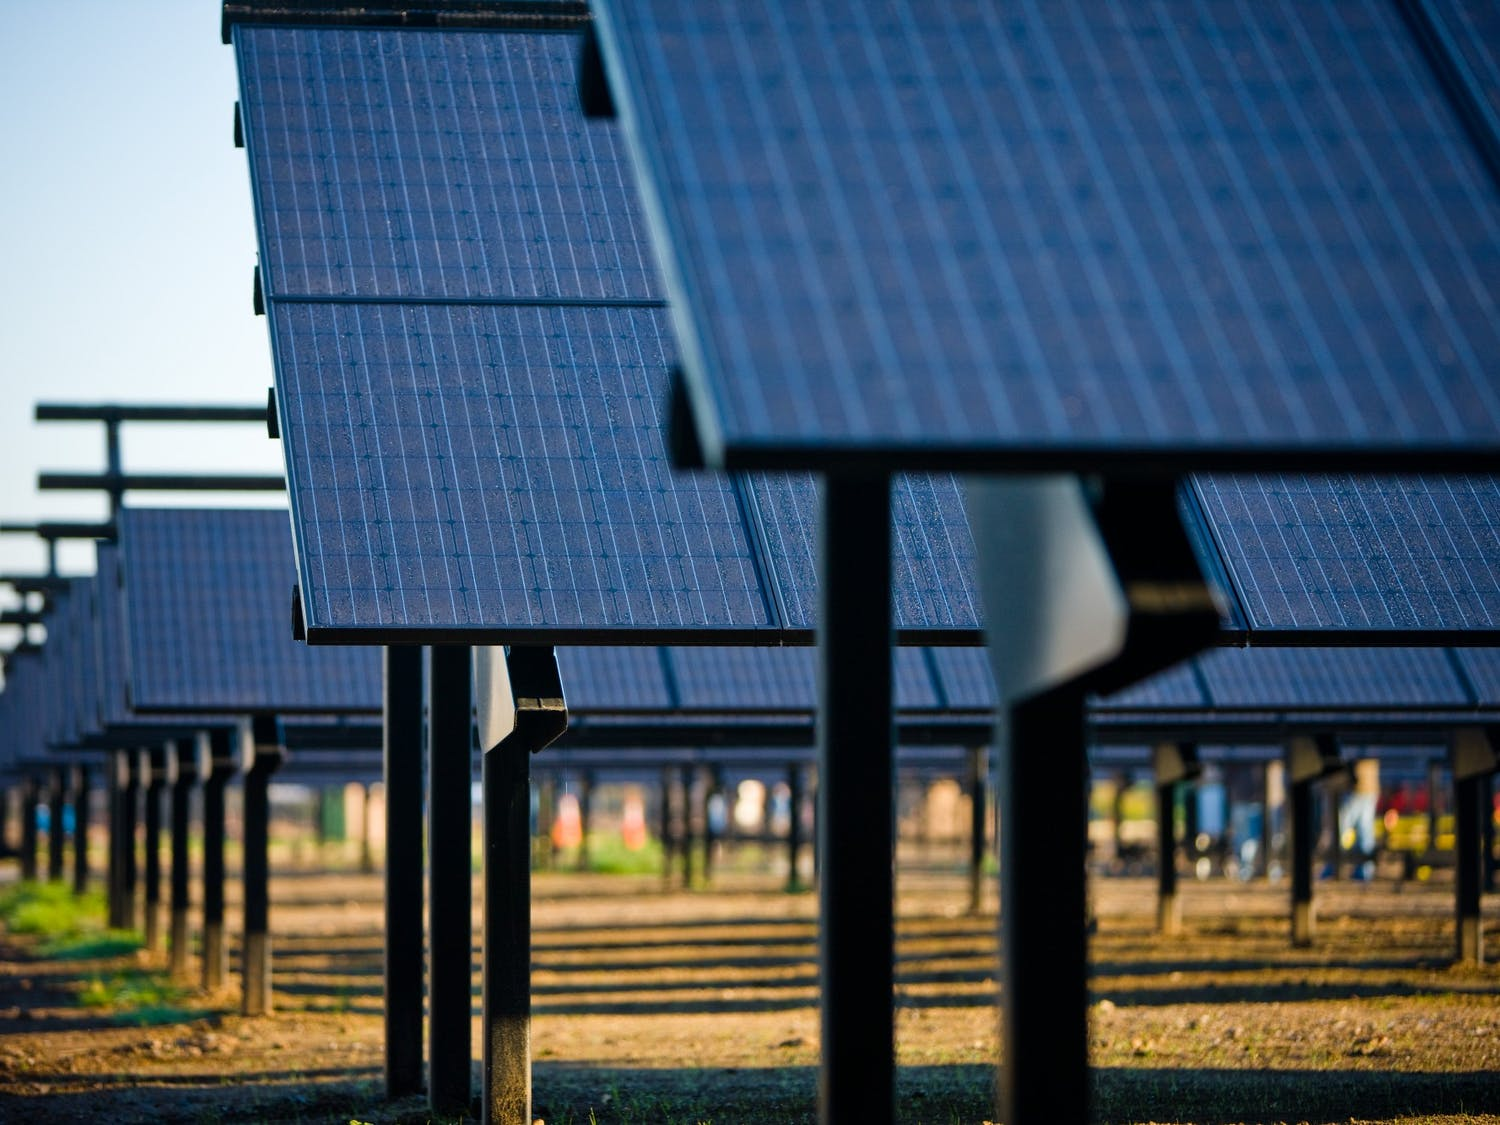 Climate captains publicized the recent construction of five new solar panel sites around North Campus and the recycling of more than 12.5 tons of electronics from South Campus, among other successes.